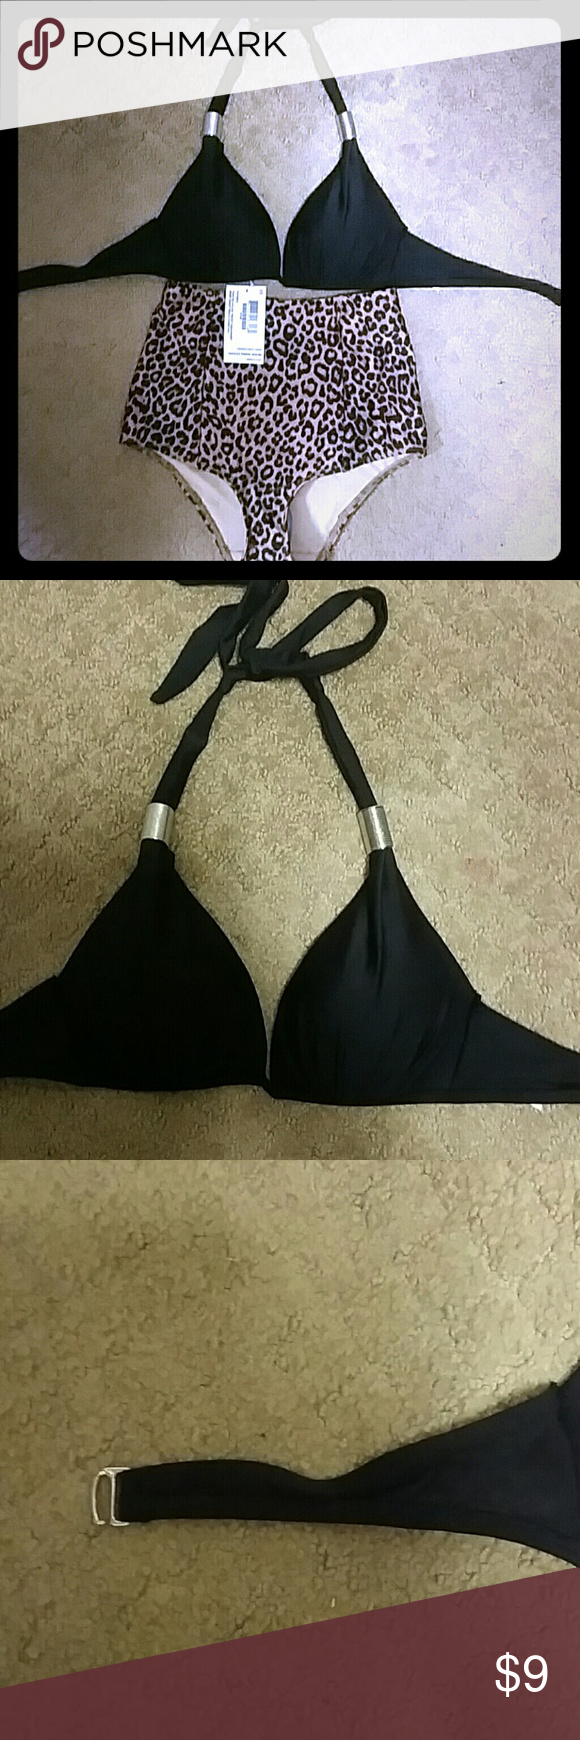 Black bikini top Worn once in Miami. Very cute Frederick's of Hollywood Swim Bikinis